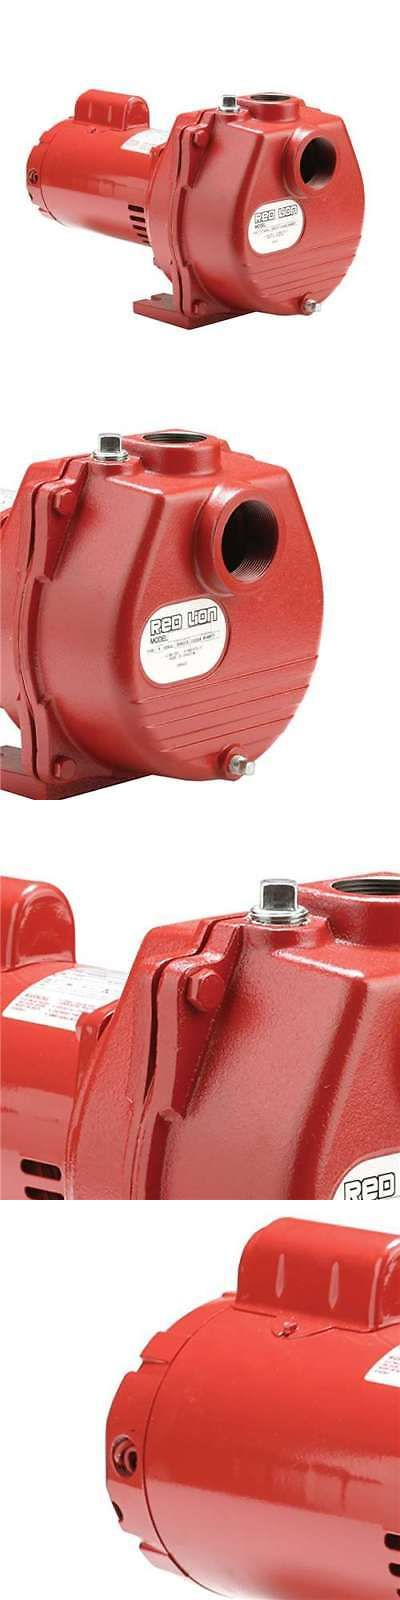 Water Pumps and Pressure Tanks 118851: Red Lion 1.5 Horsepower 71 Gpm Cast Iron Irrigation Sprinkler Pump | Open Box -> BUY IT NOW ONLY: $257.95 on eBay!